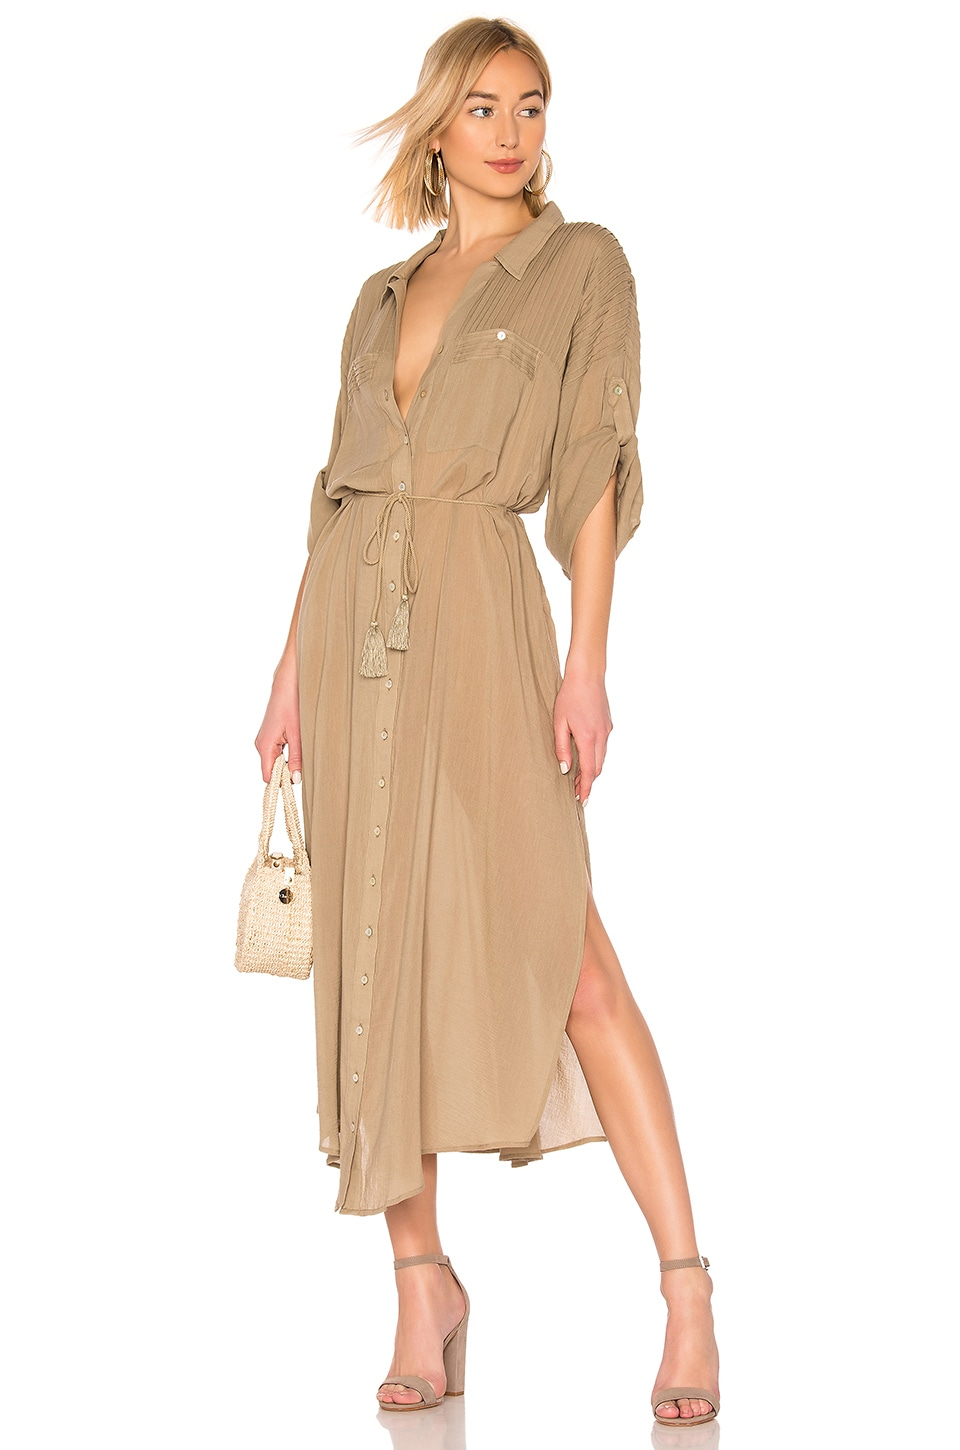 Spell & The Gypsy Collective Linda Shirt Dress in Khaki